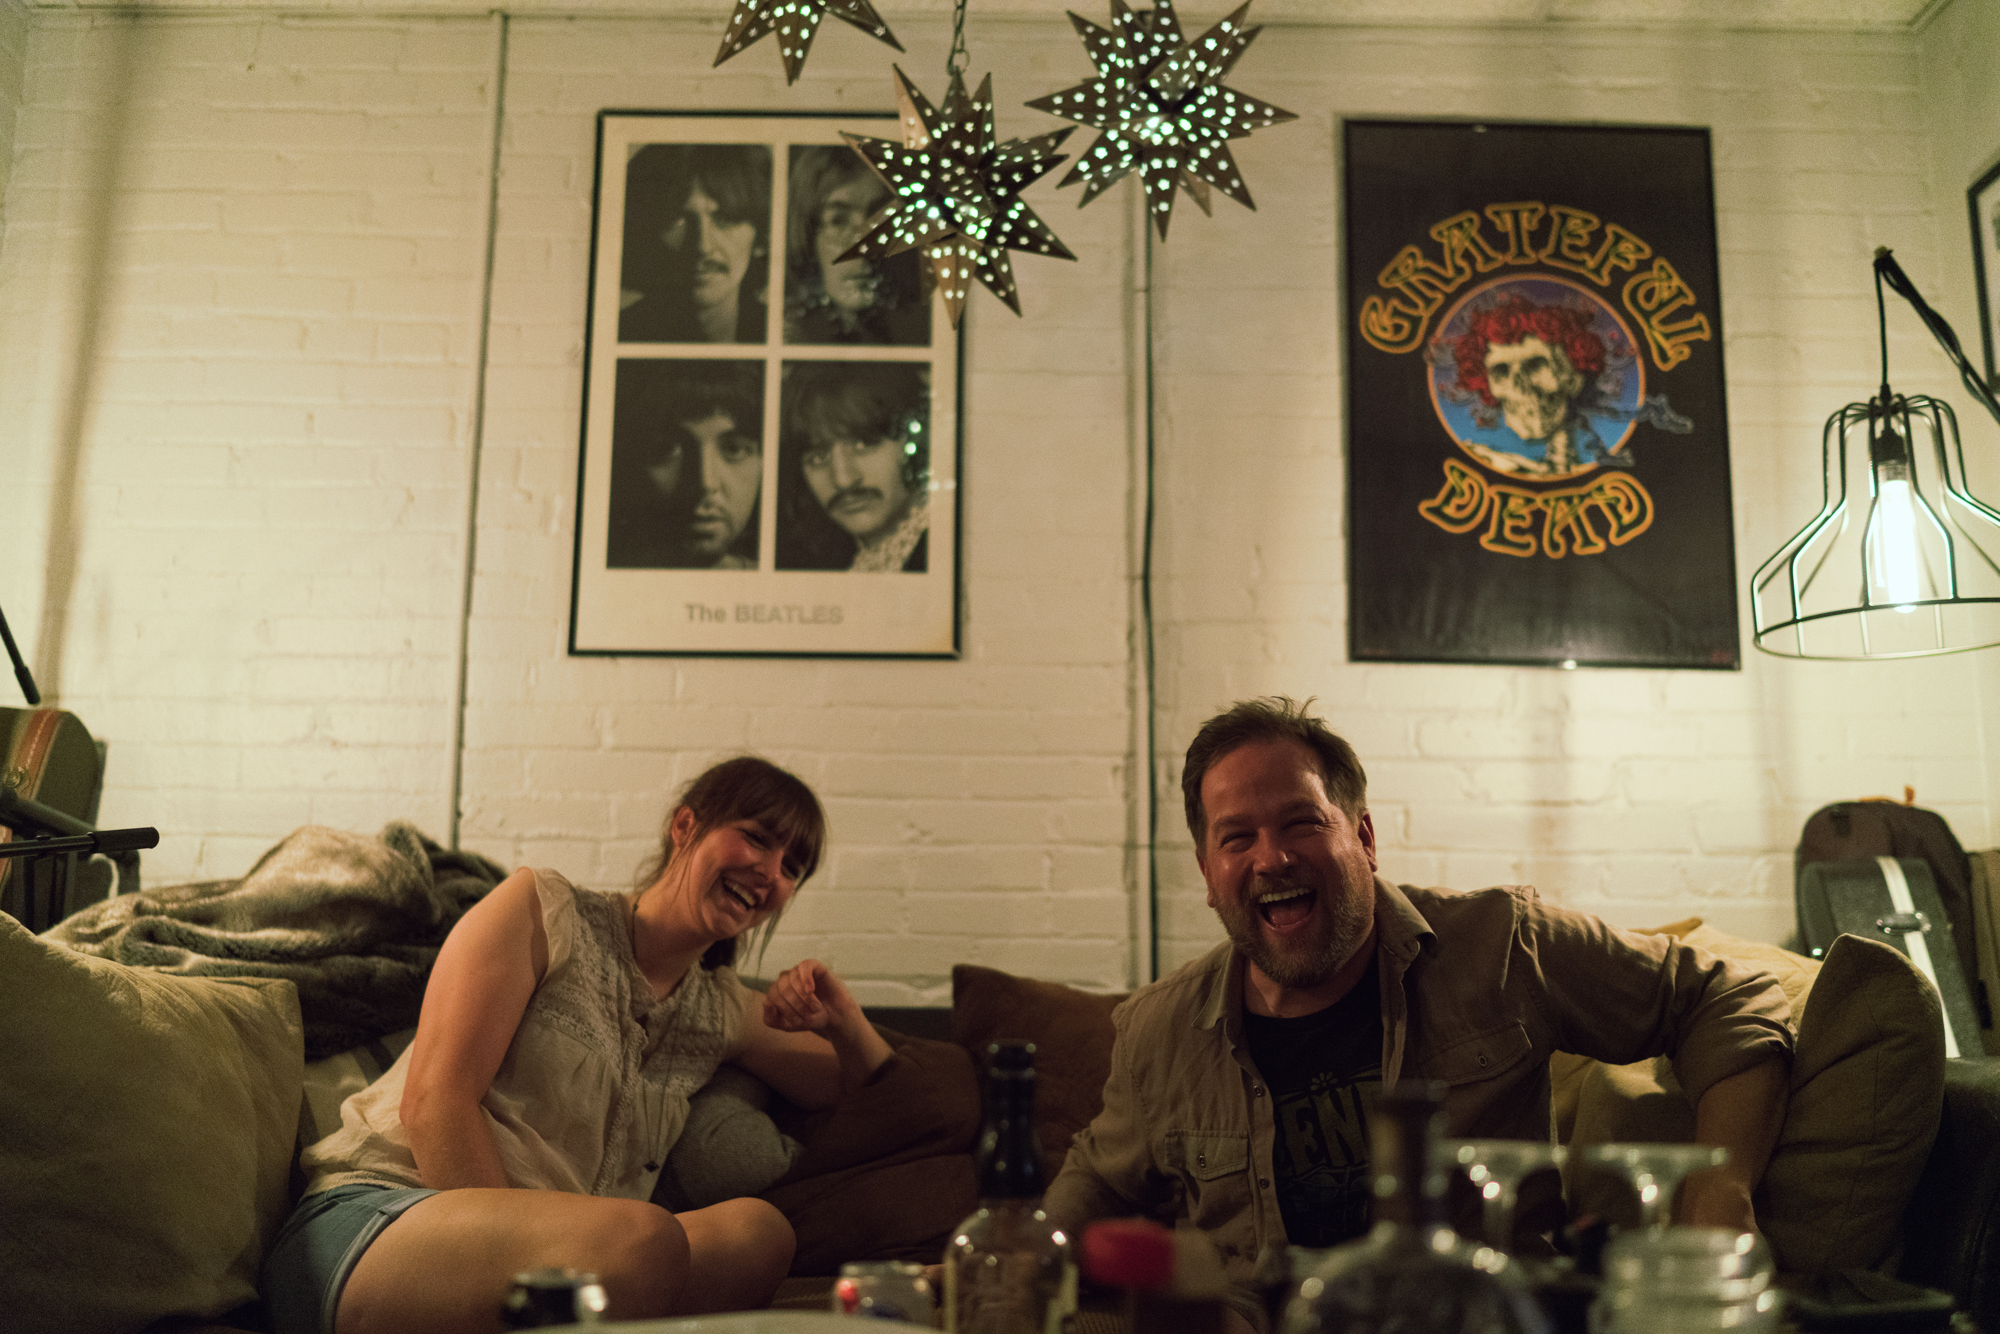 Carrie Myers & Todd Oberndorfer. Image by Cam McLeod.